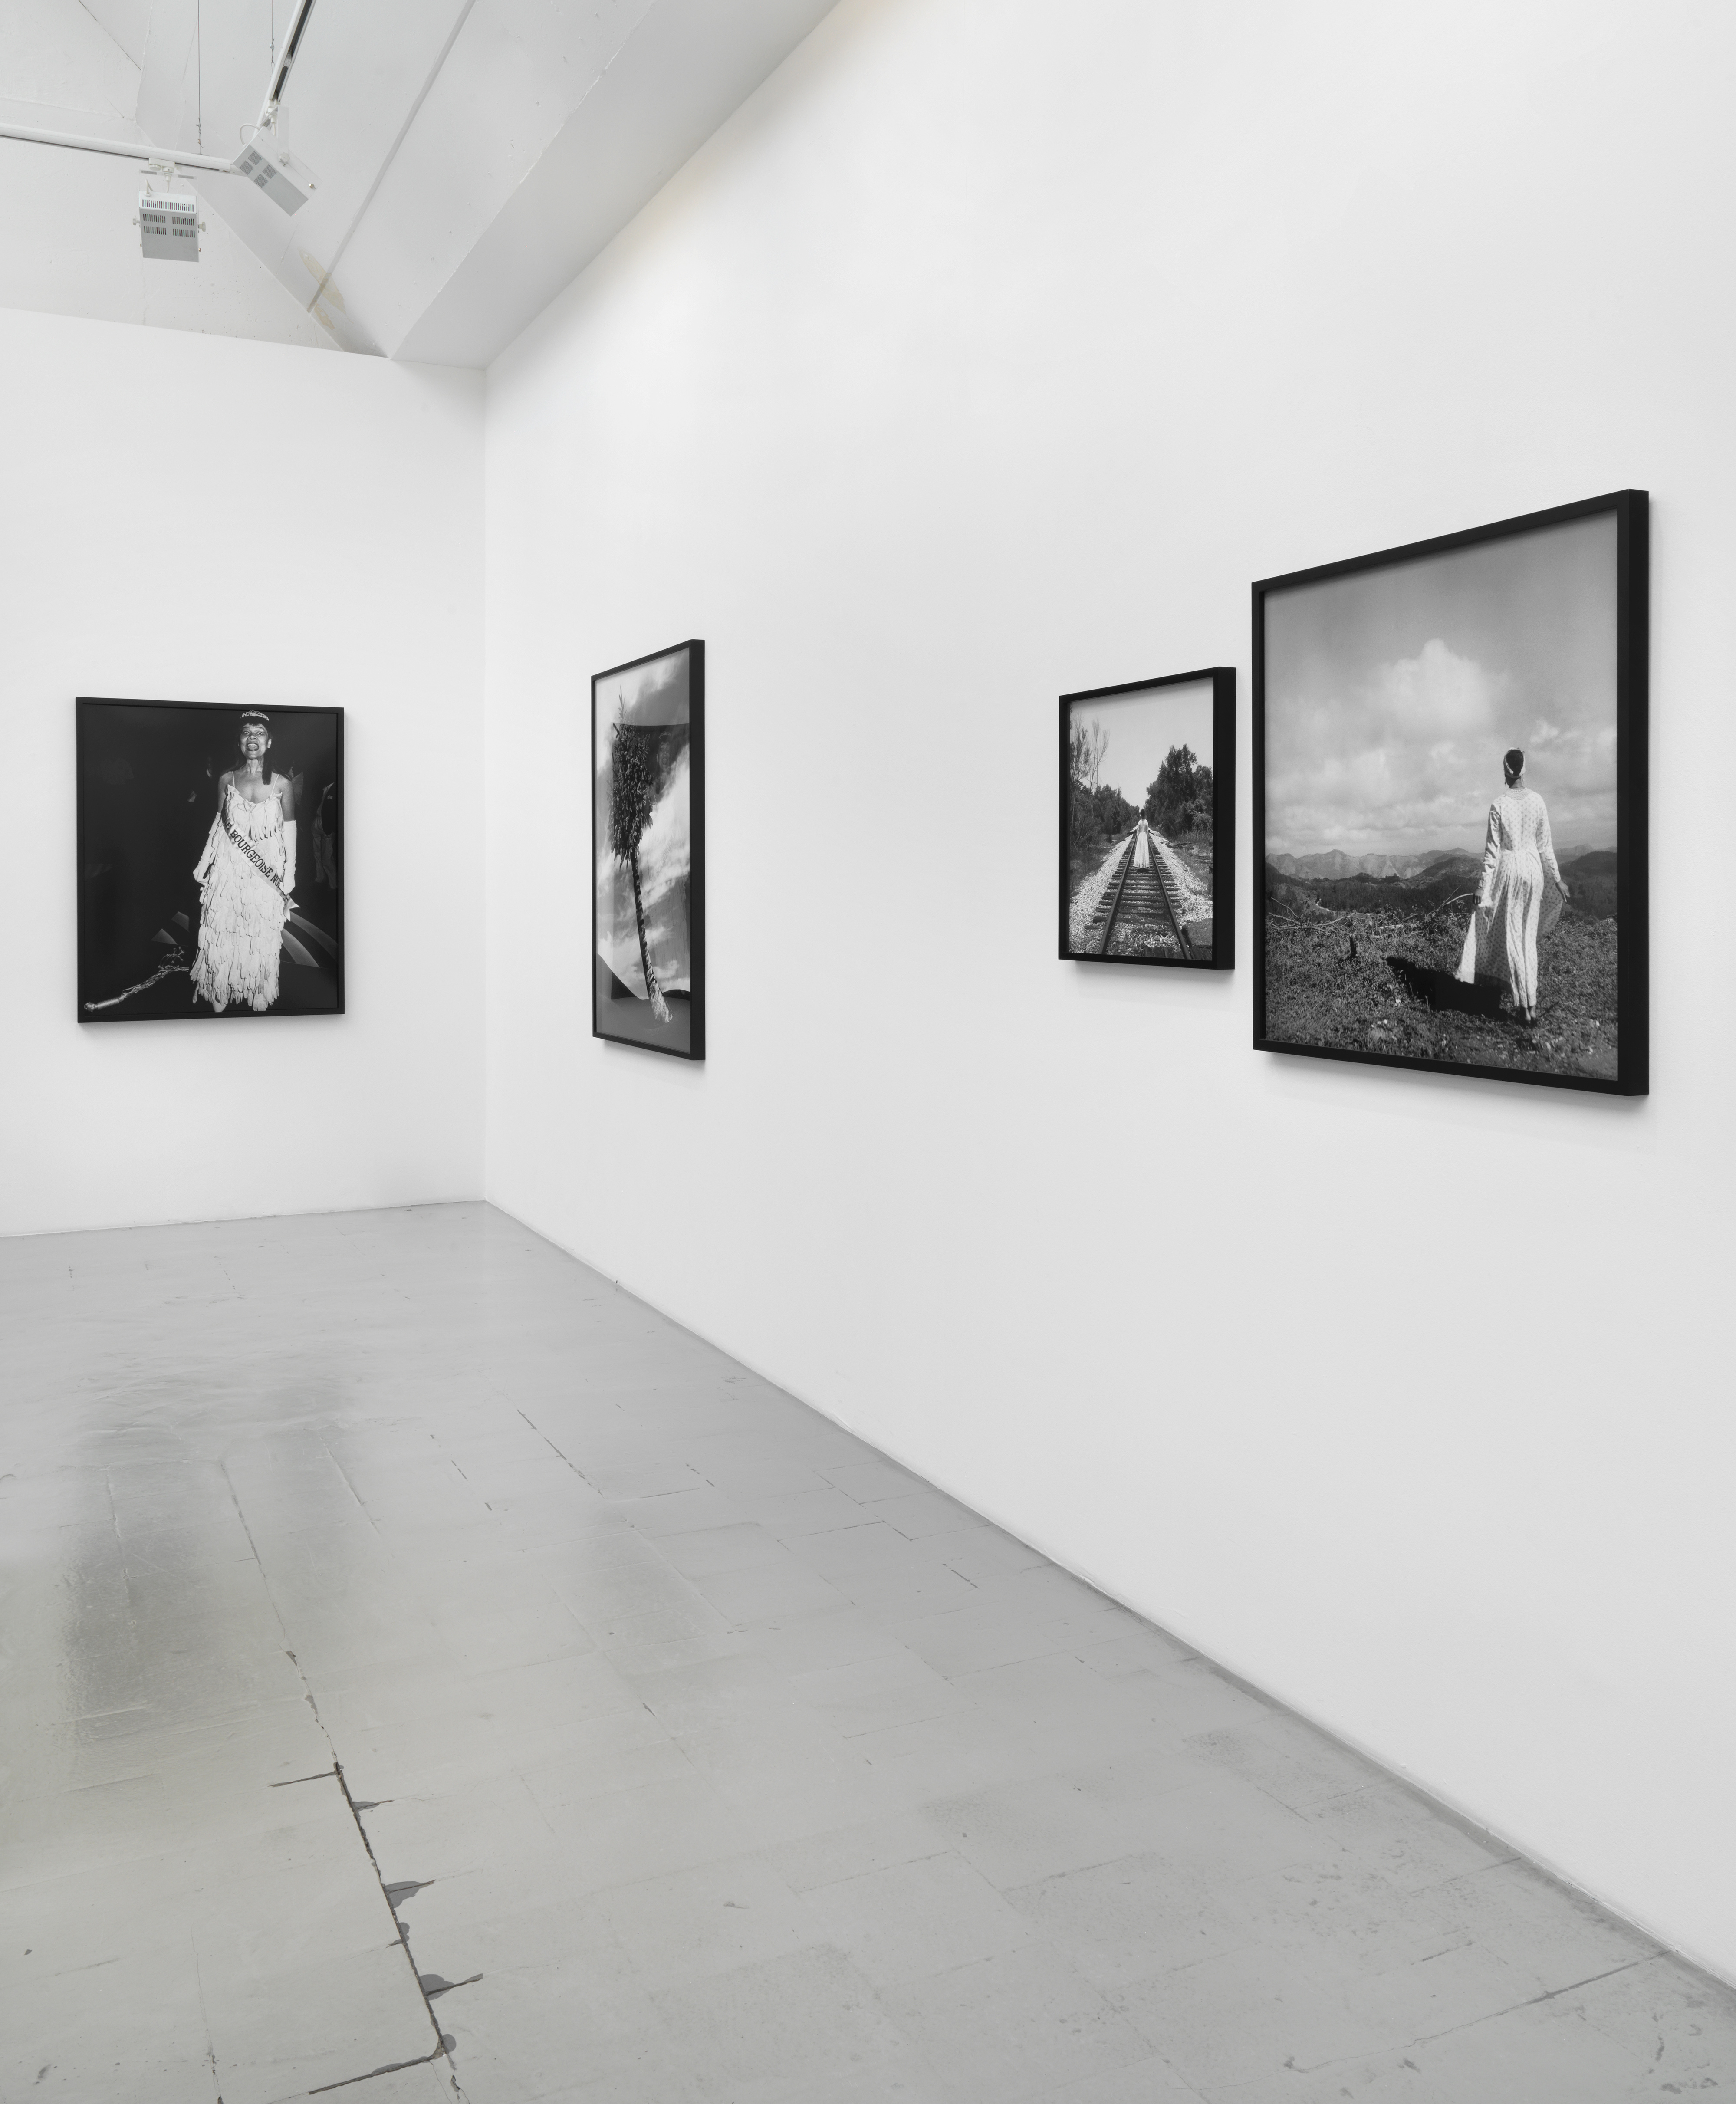 Galerie Barbara Thumm \ Carrie Mae Weems, María Magdalena Campos-Pons – Black Matters group exhibition